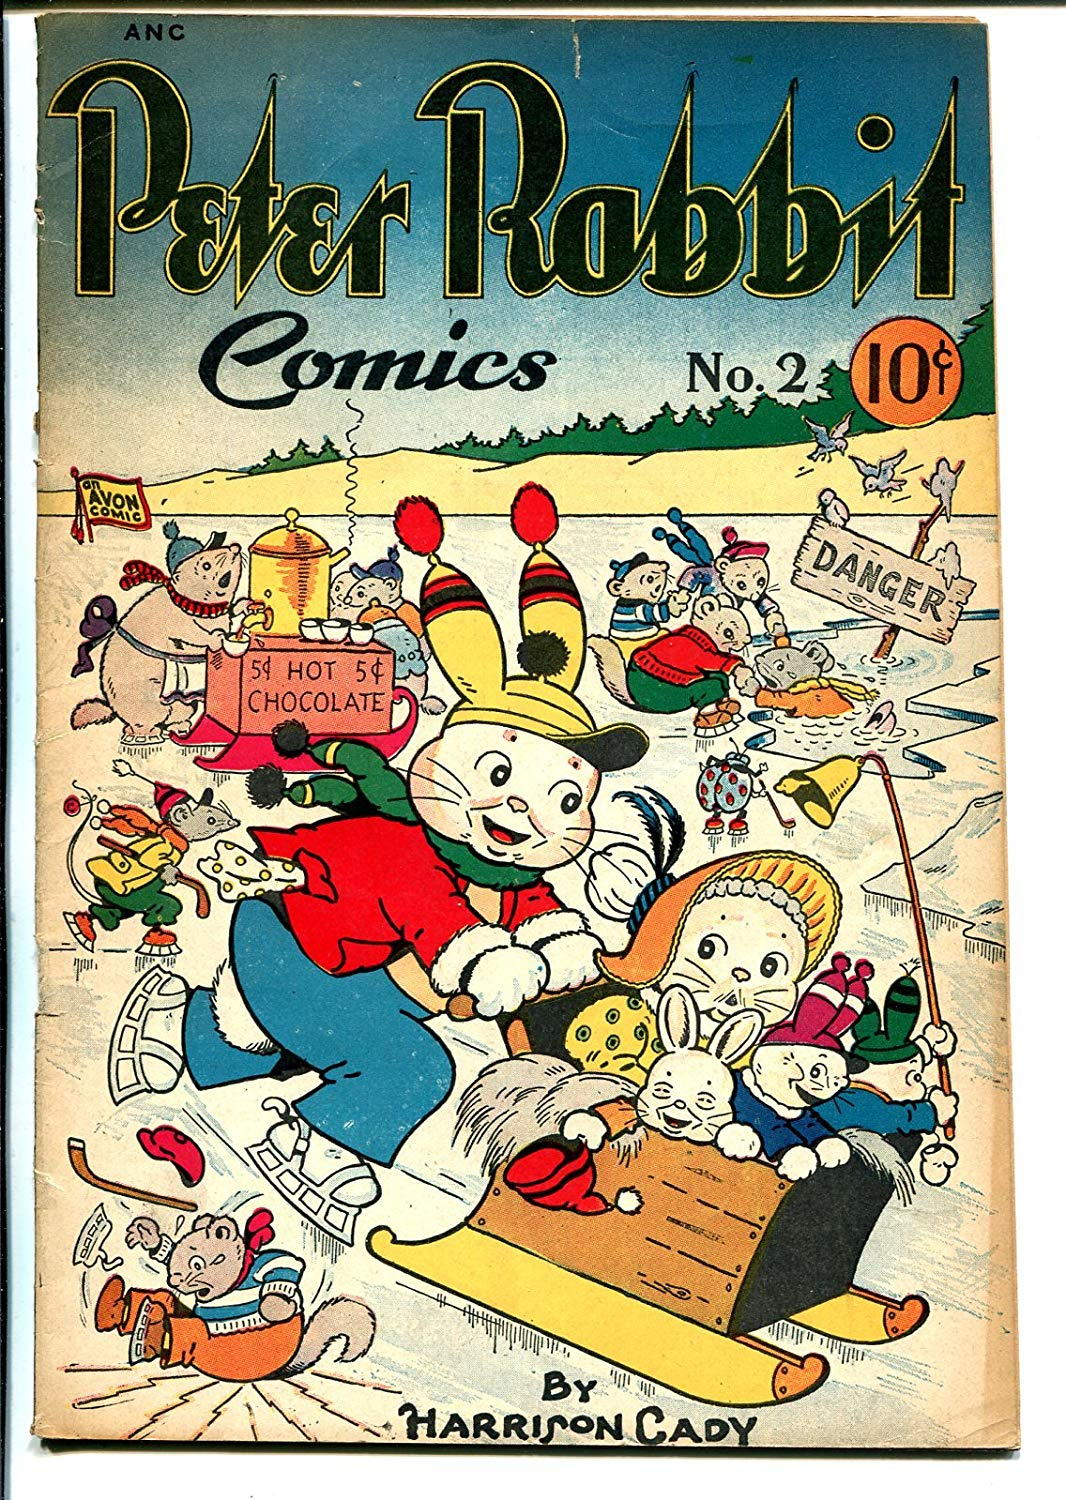 Peter Rabbit Comics Cover by Harrison Cady